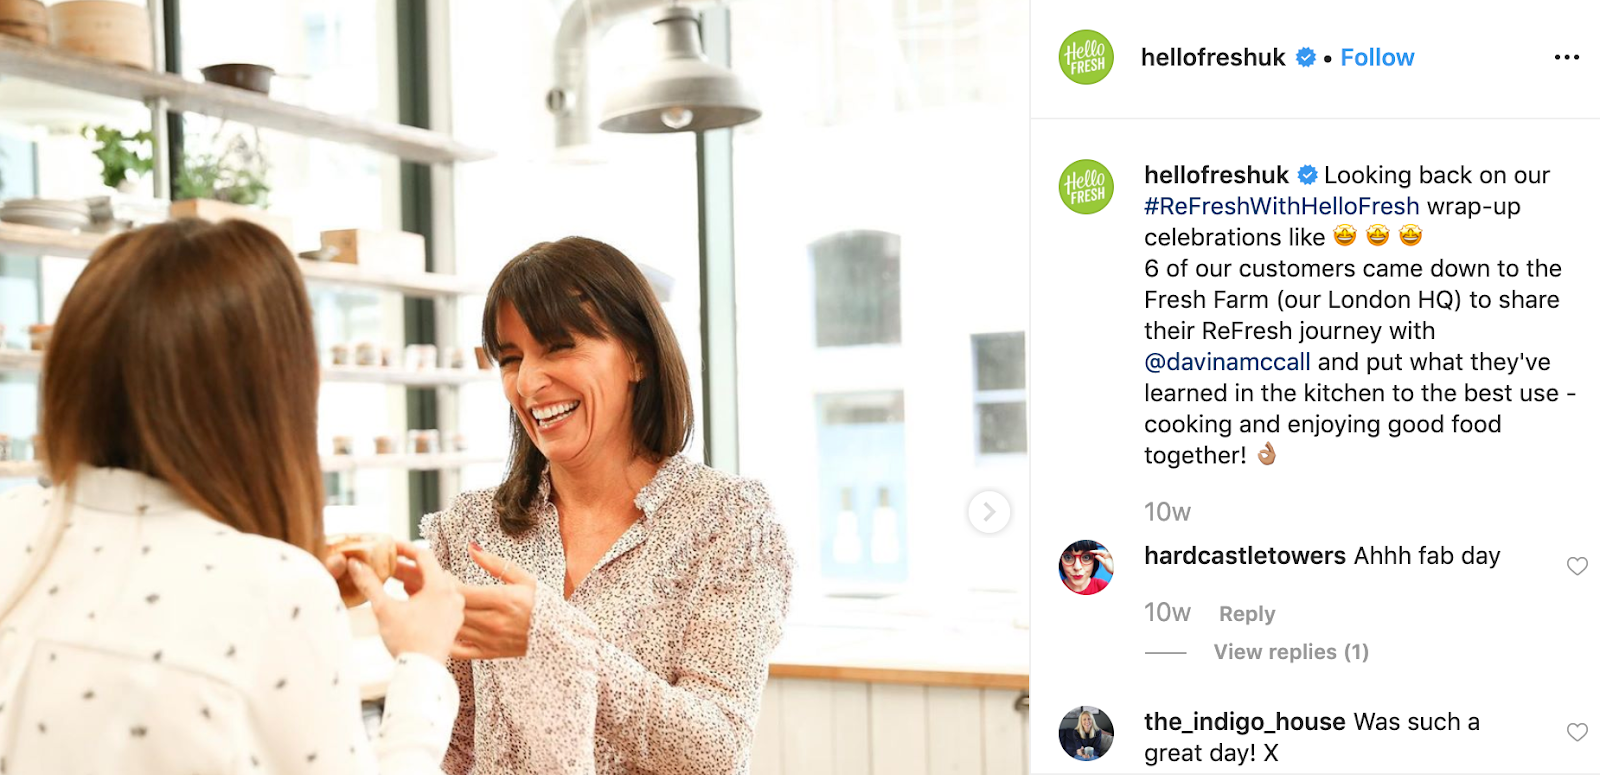 Global Marketing Strategy: Screenshot of Instagram post from HelloFresh UK with well-known British TV presenter Davina McCall